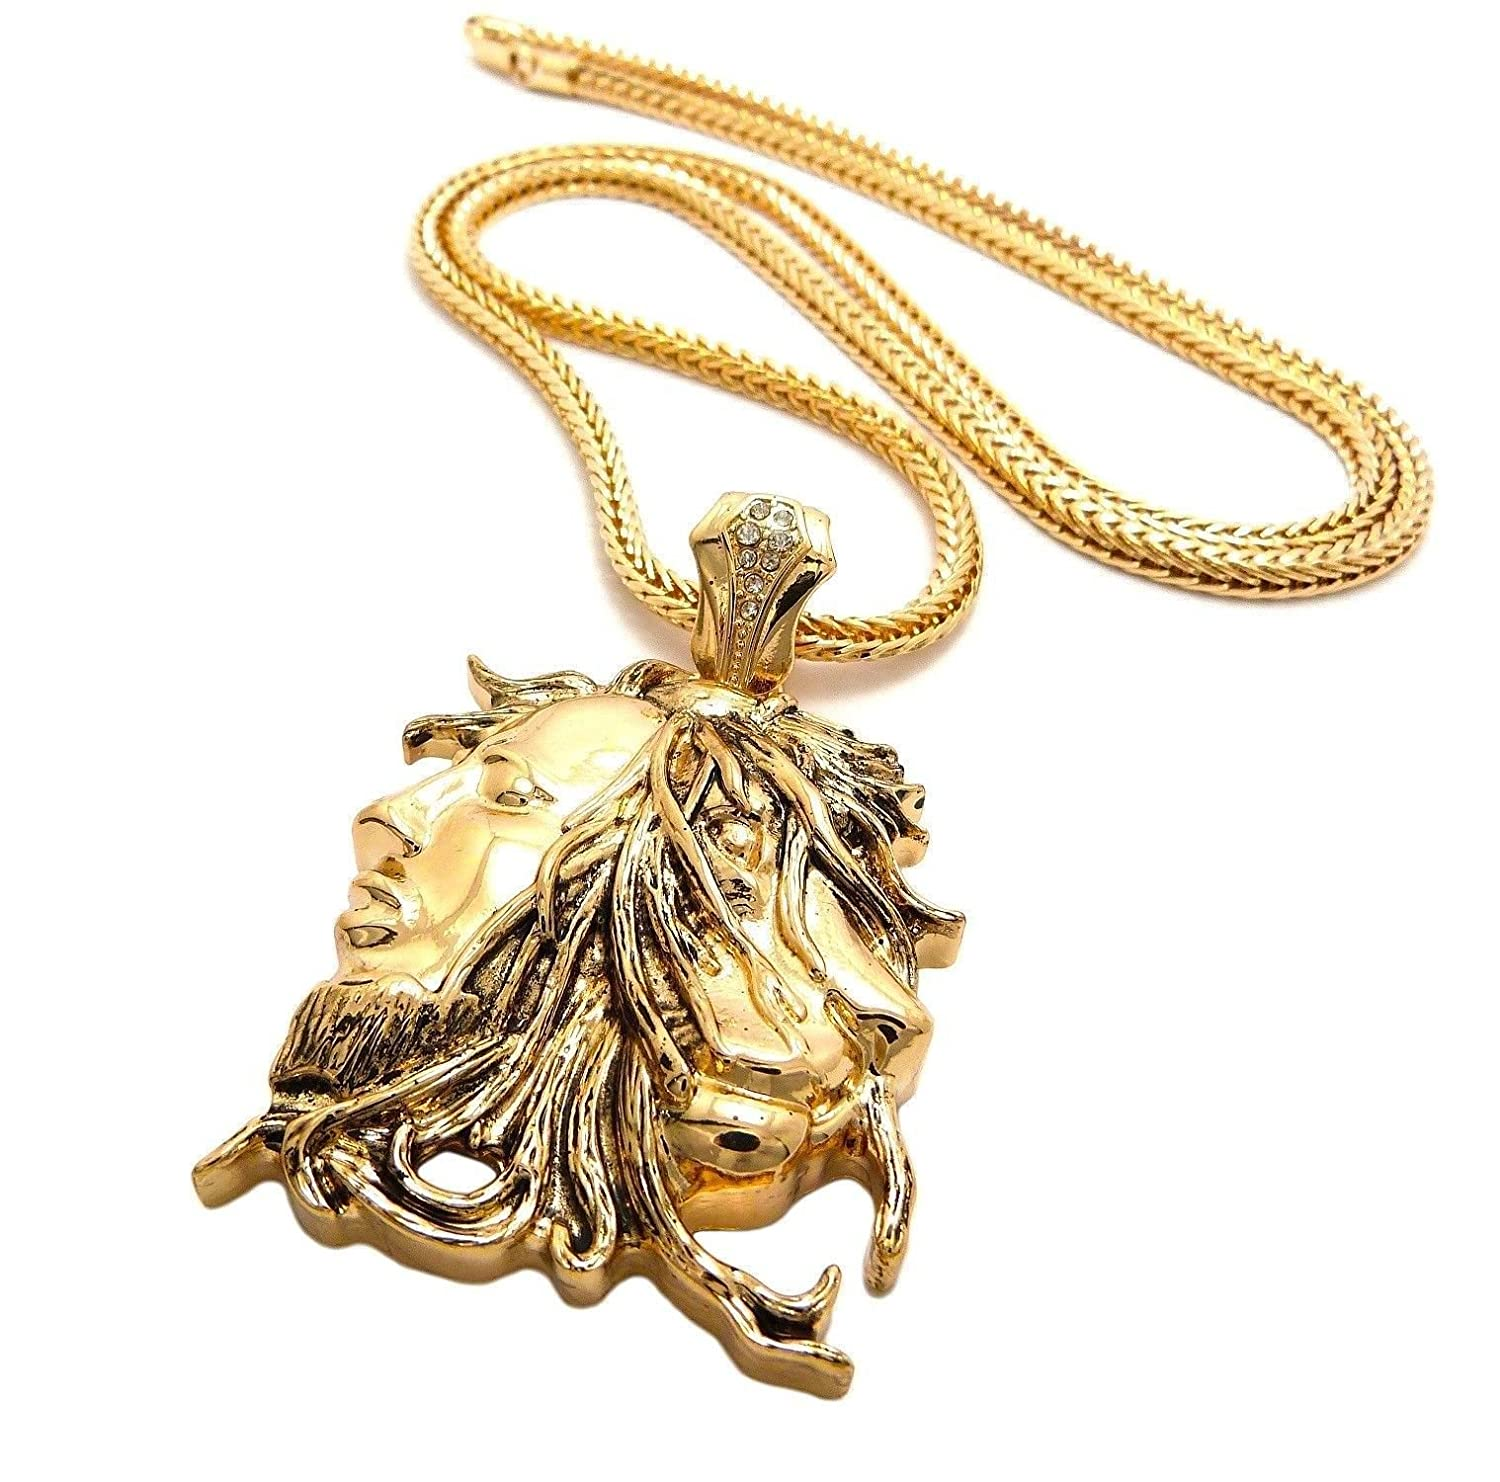 s crown out product lion hop king men franco original iced hip short wholesale description pendant